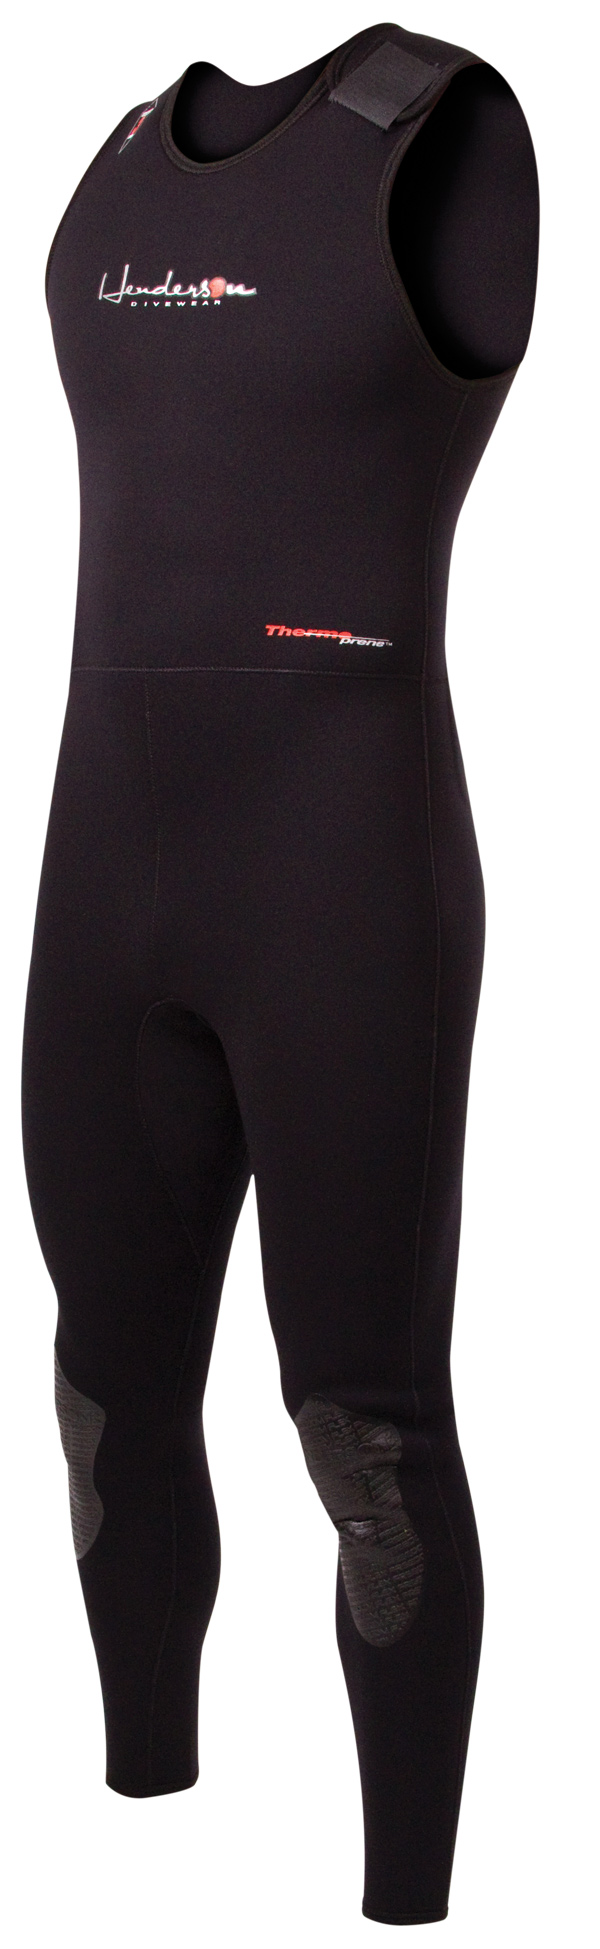 Henderson Thermoprene 5mm Men's Long John Wetsuit - Combo